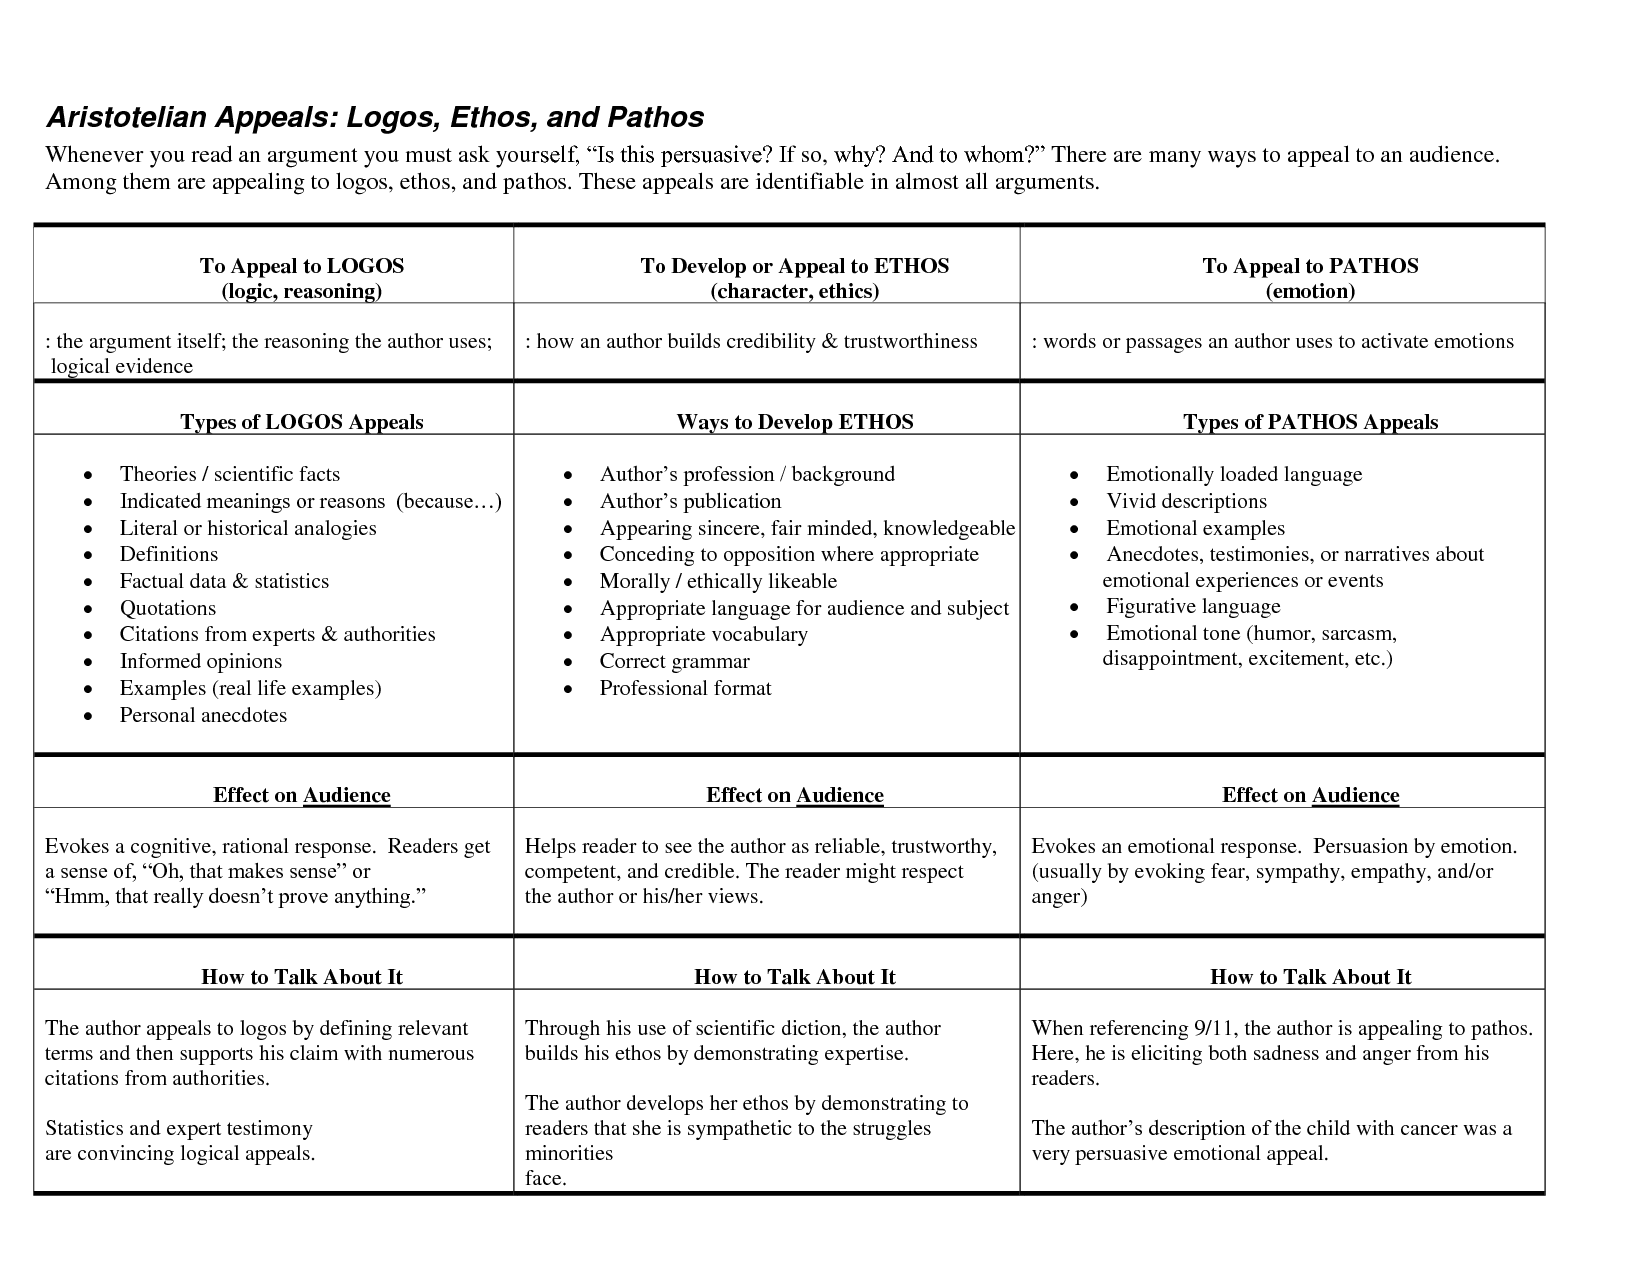 Worksheets Ethos Logos Pathos Worksheet ethos pathos logos aristotelian appeals and pathos